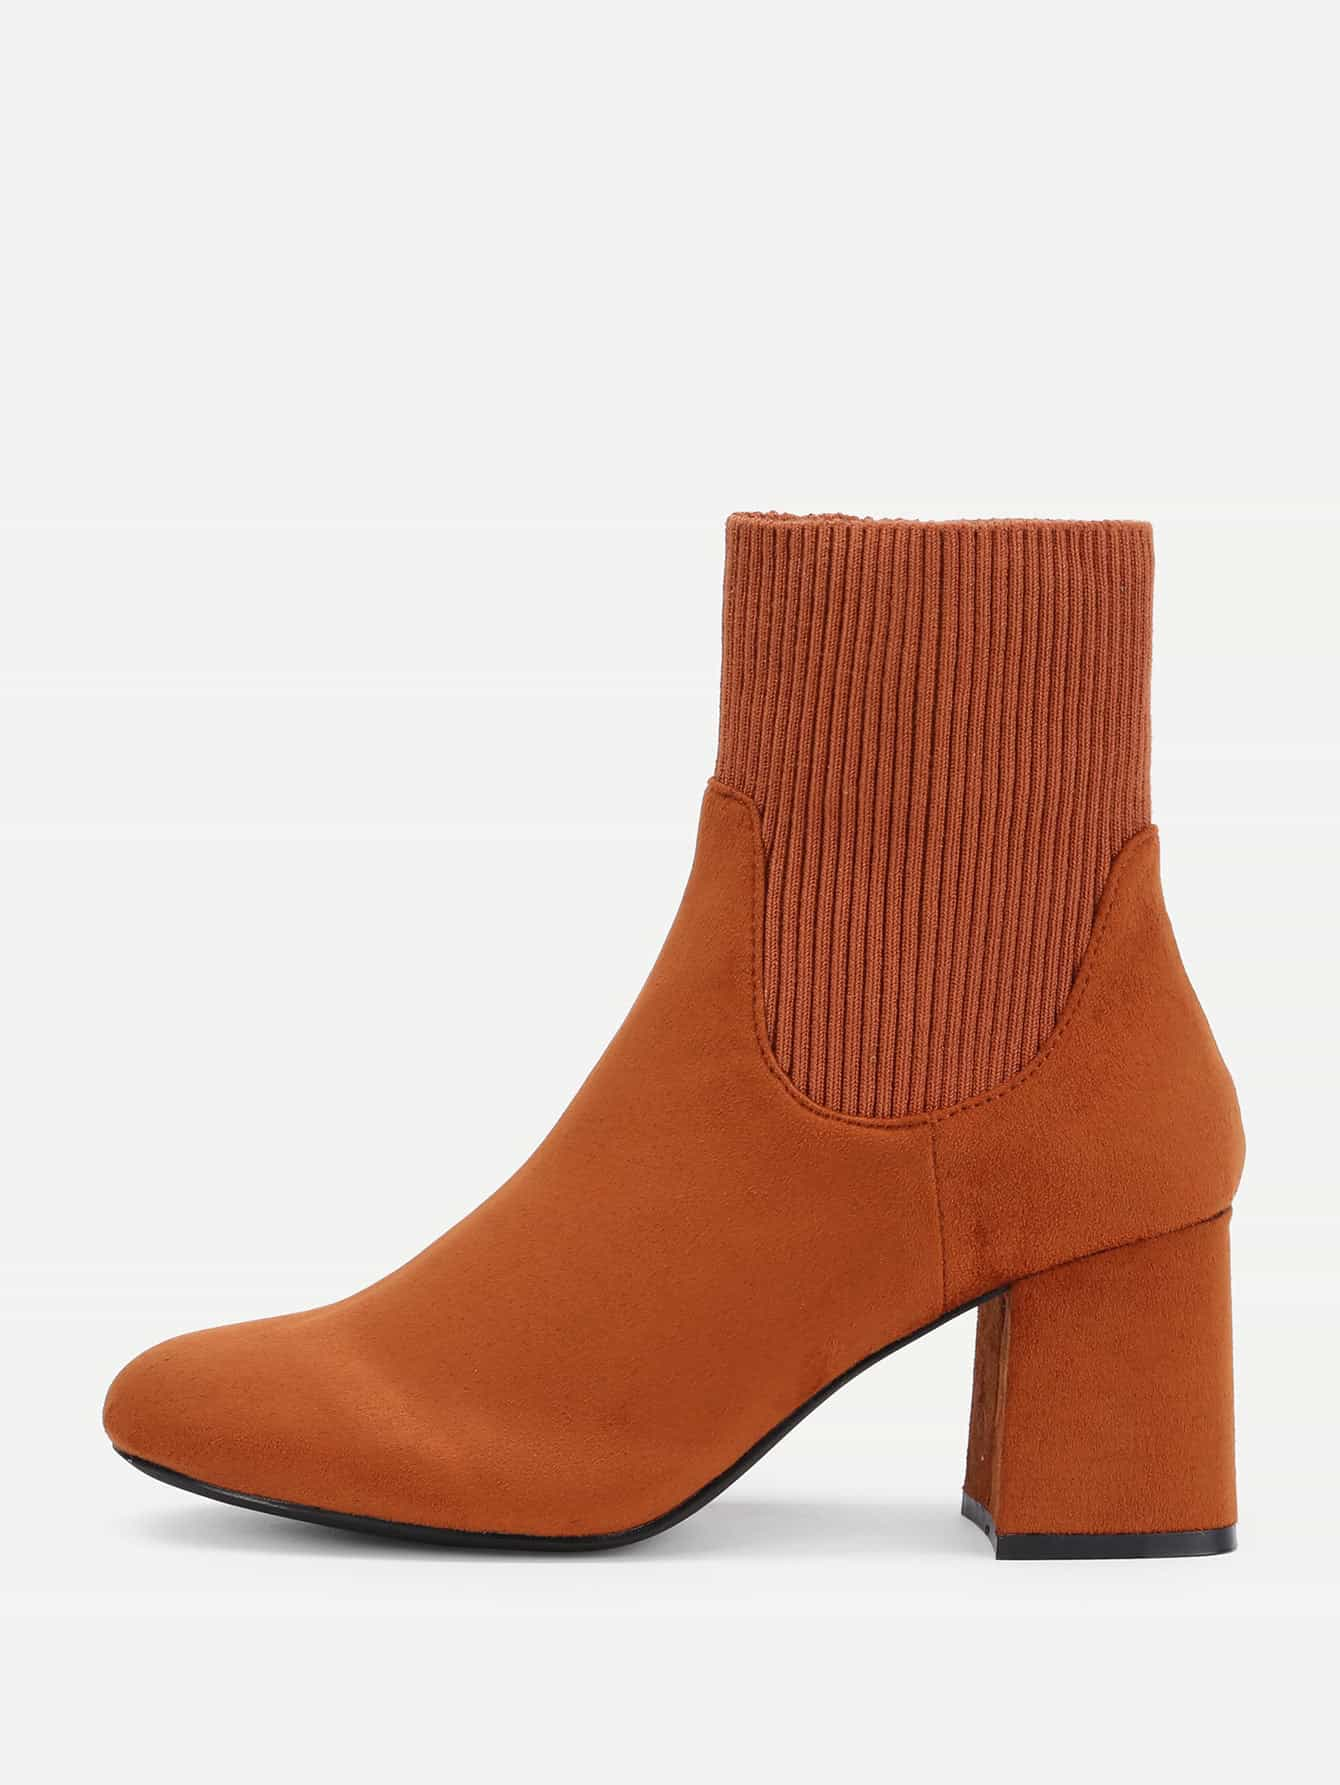 Image of Almond Toe Block Heeled Ankle Boots